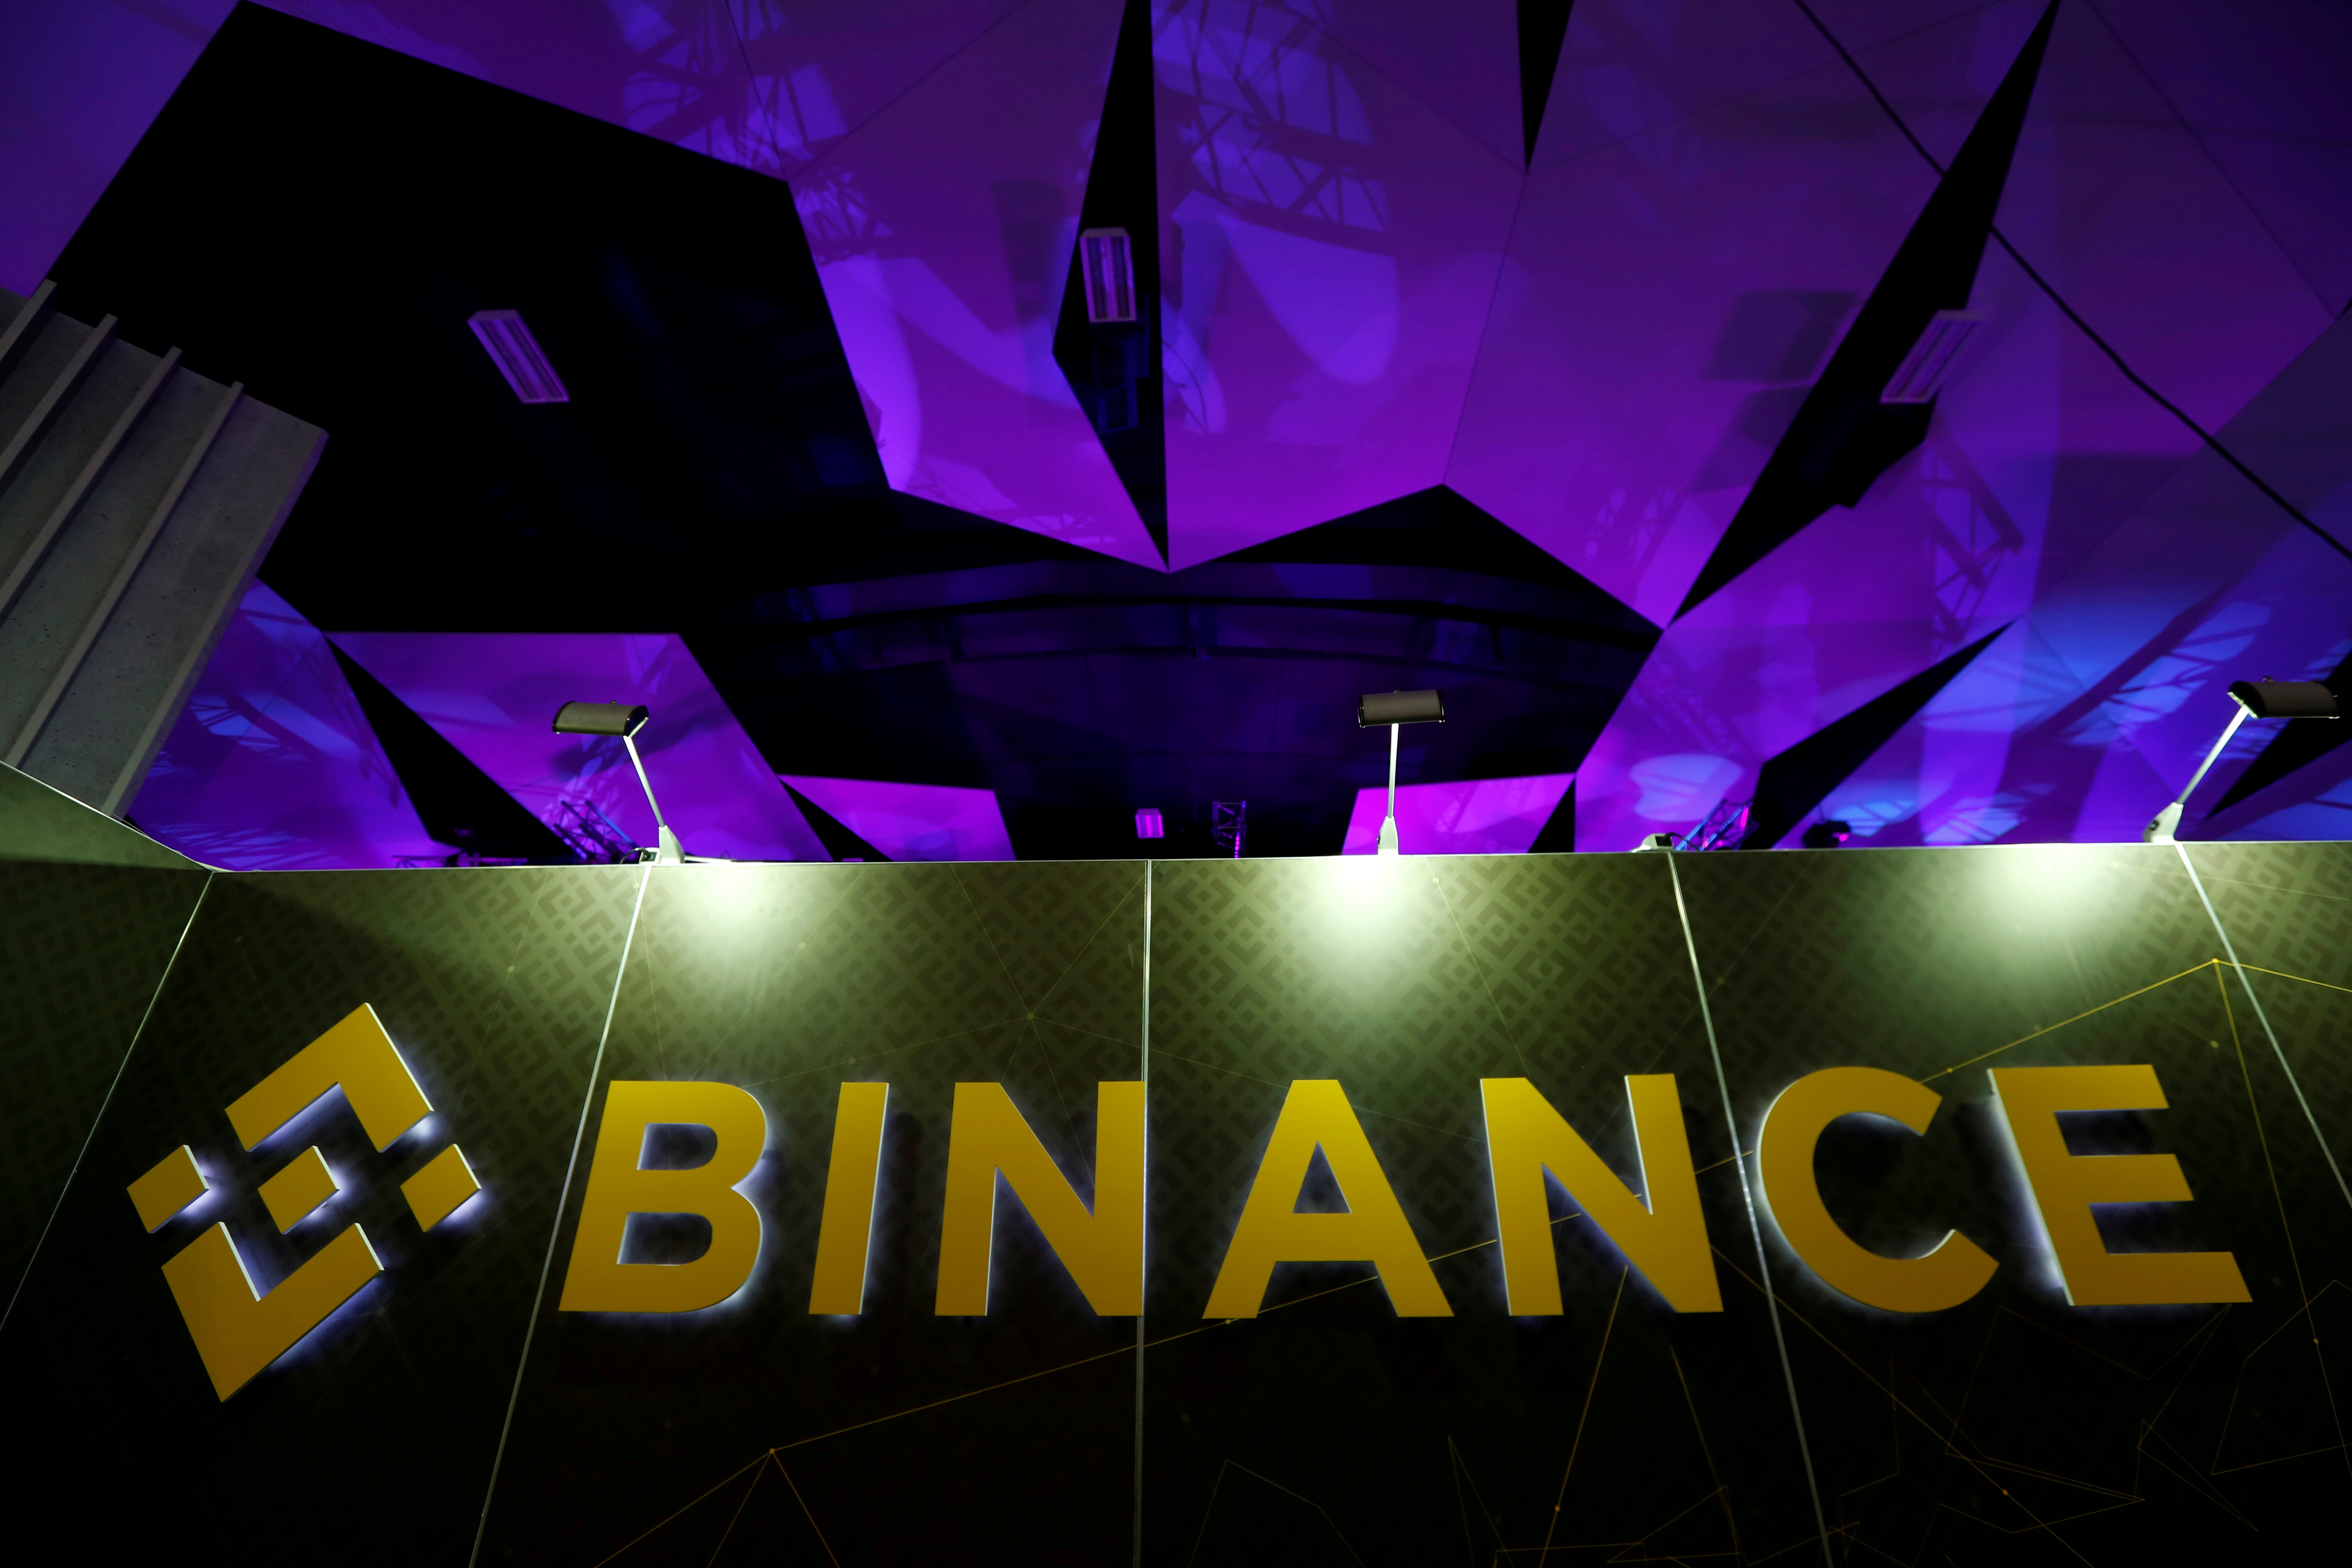 The logo of Binance is seen on their exhibition stand at the Delta Summit, Malta's official Blockchain and Digital Innovation event promoting cryptocurrency, in St Julian's, Malta October 4, 2018. REUTERS/Darrin Zammit Lupi/File Photo